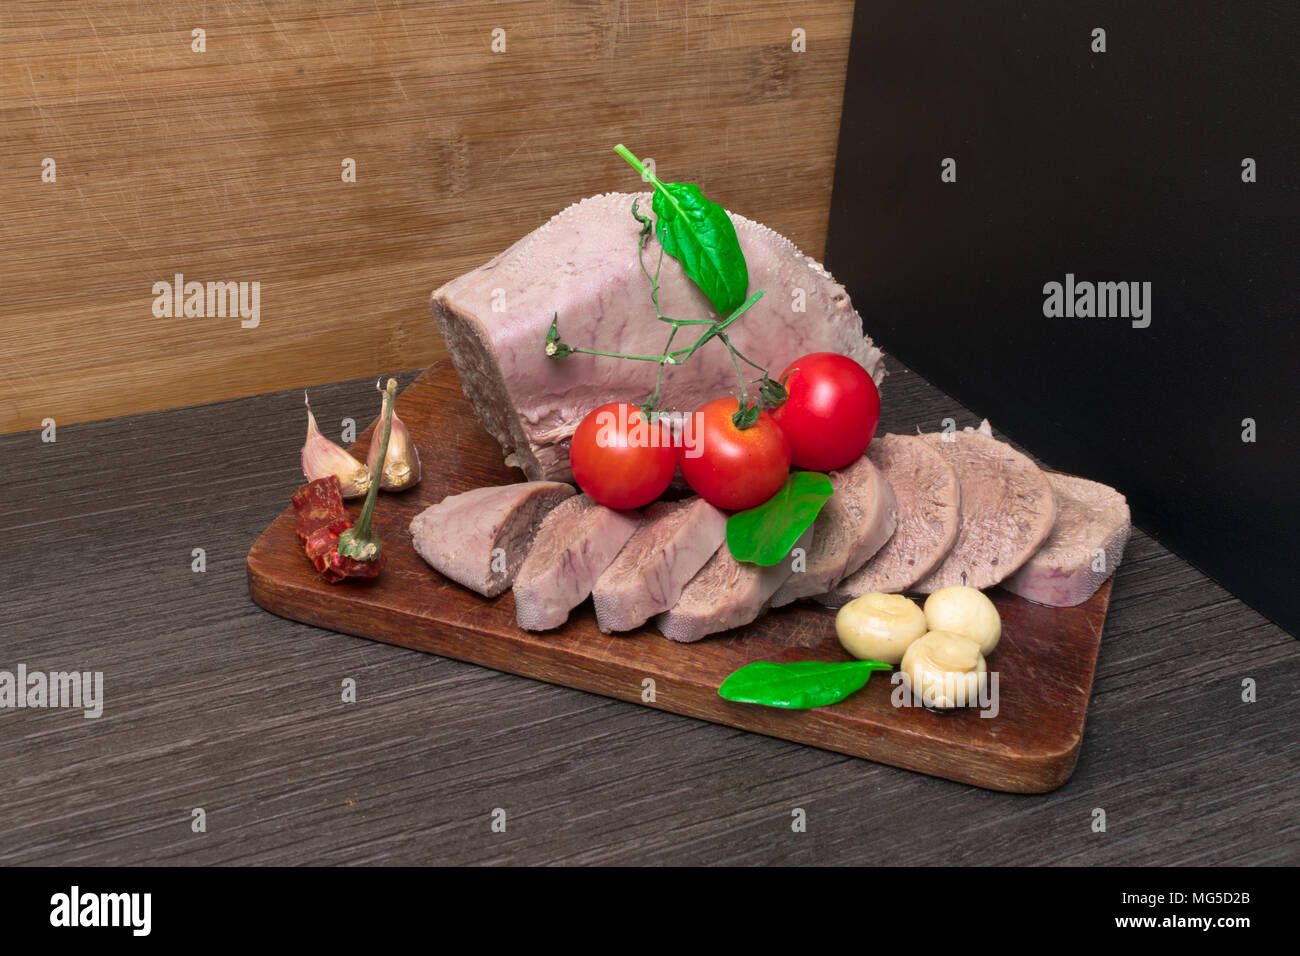 Boiled beef, pork tongue with cherry tomatoes, mushrooms -champignon, basil leaf, studio shot, isolated on wood background. Top view - Stock Image